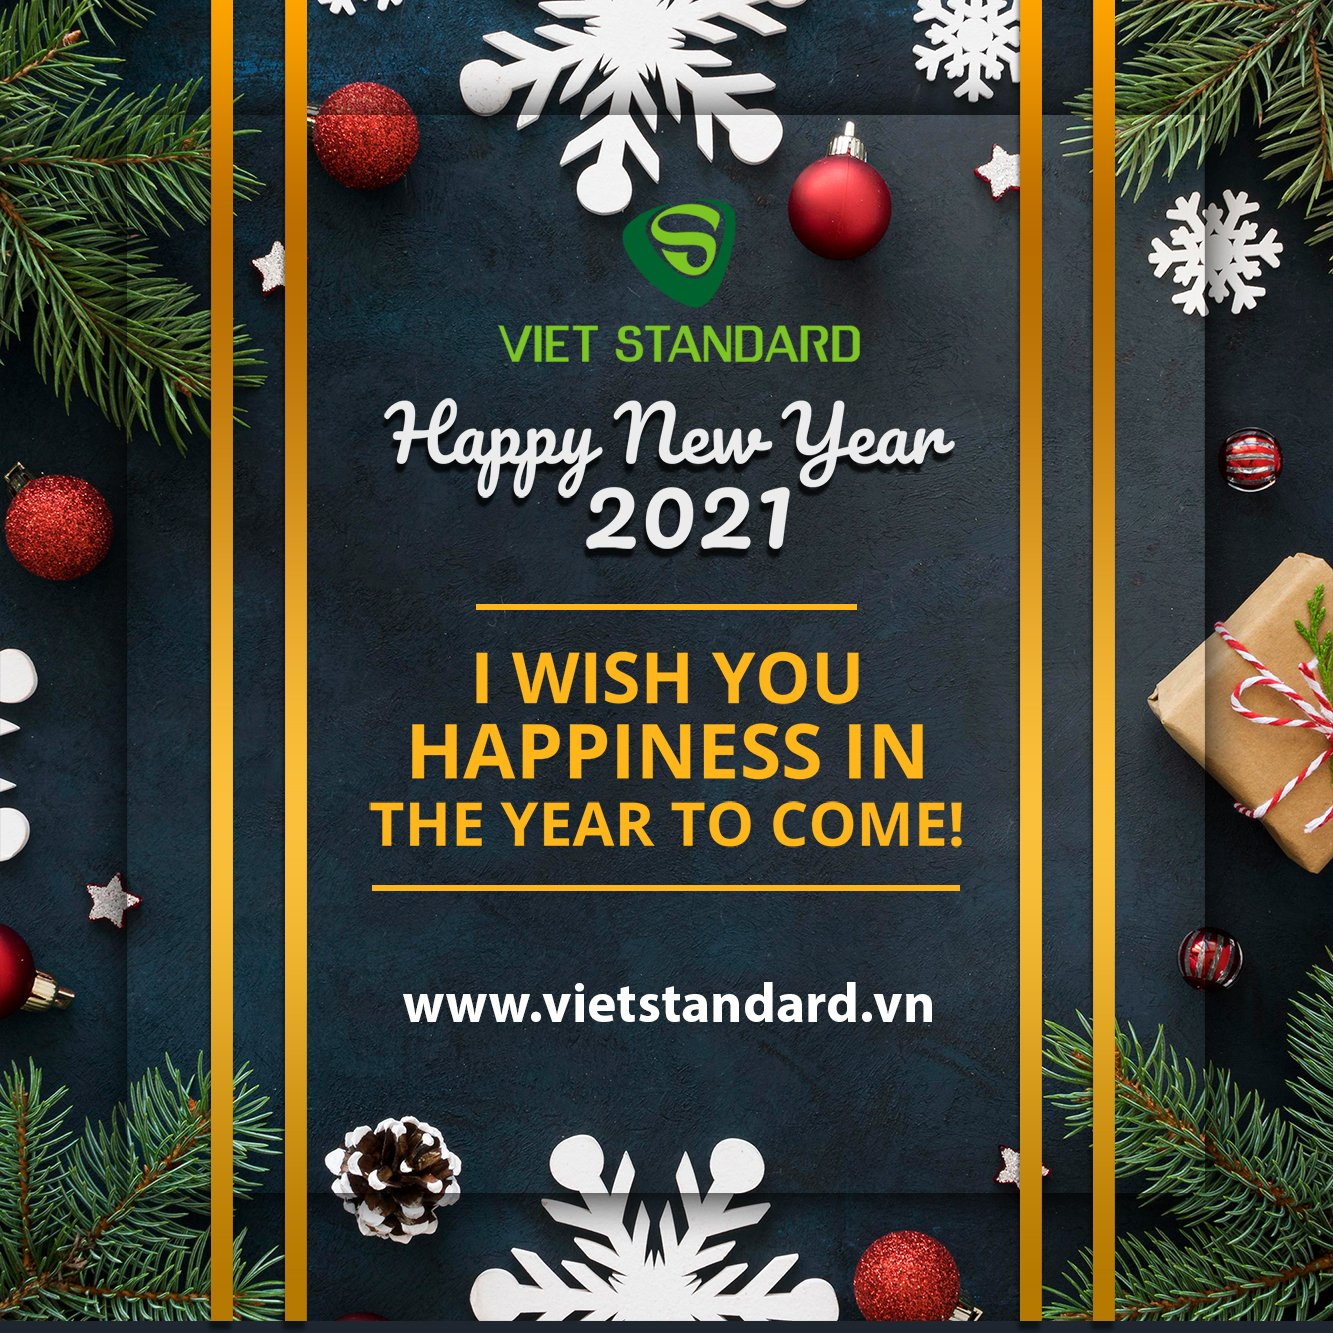 VietStandard: Happy New Year 2021!